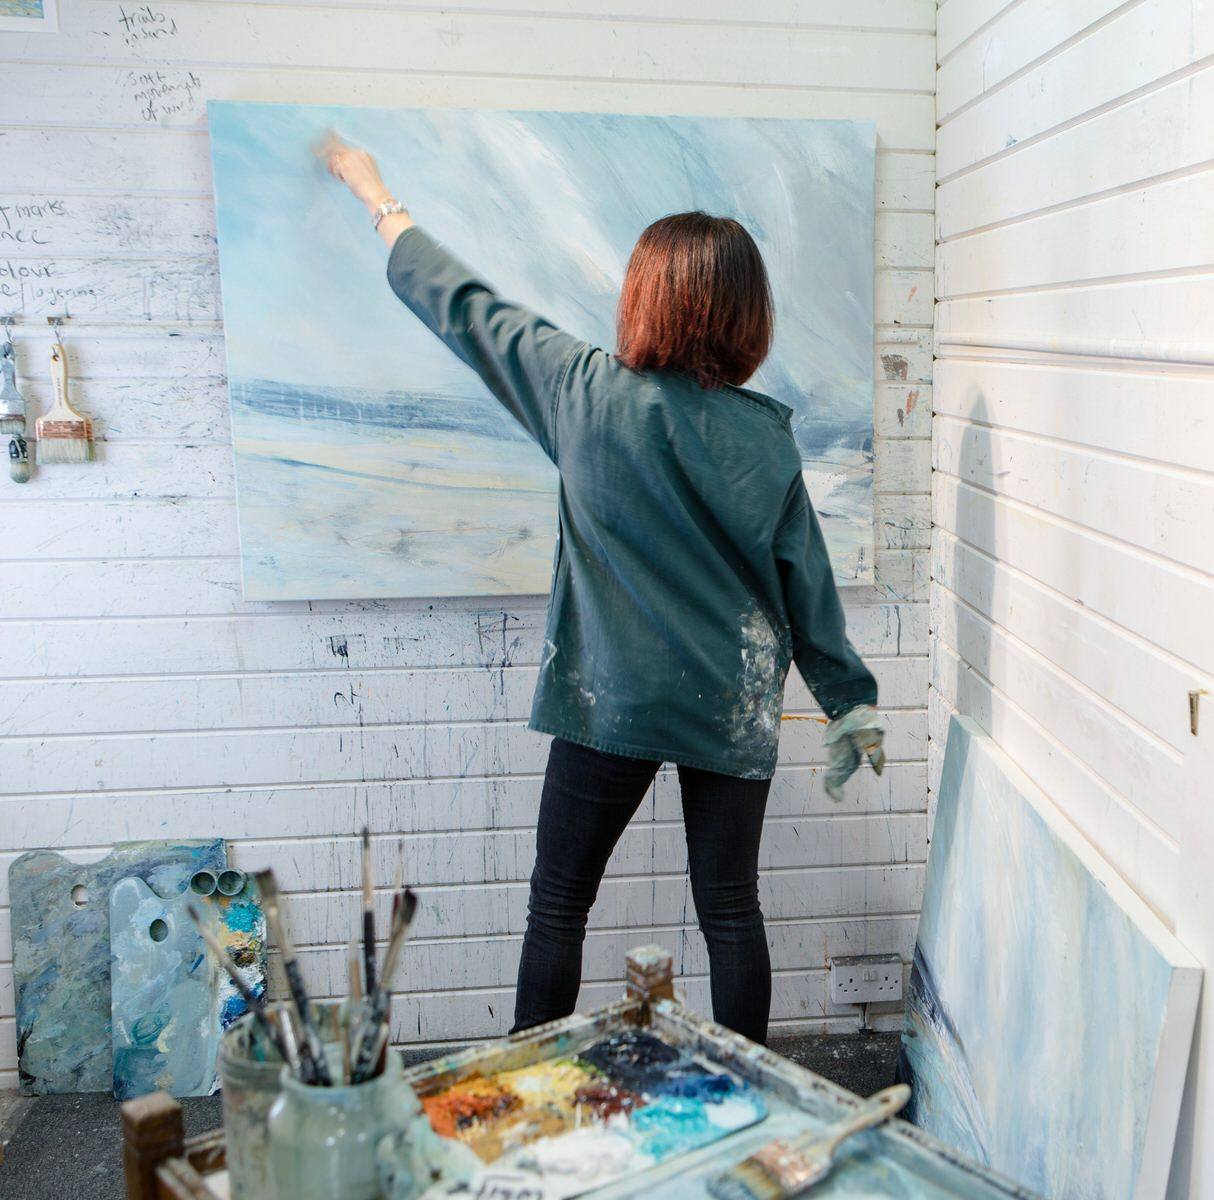 Alison painting in studio